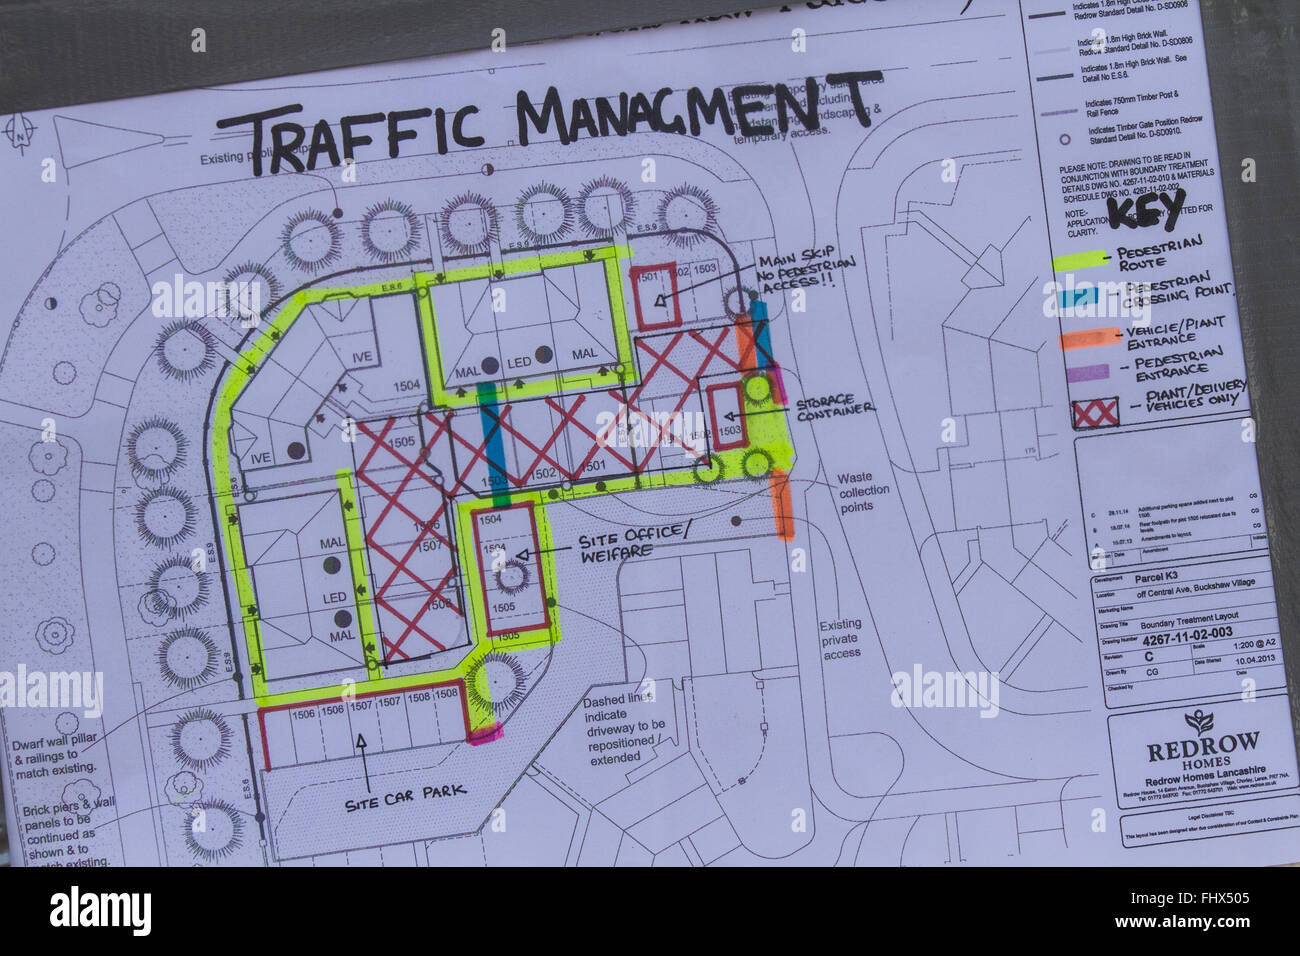 Mis Spelt Traffic Management Safety Site Plan For Redrow